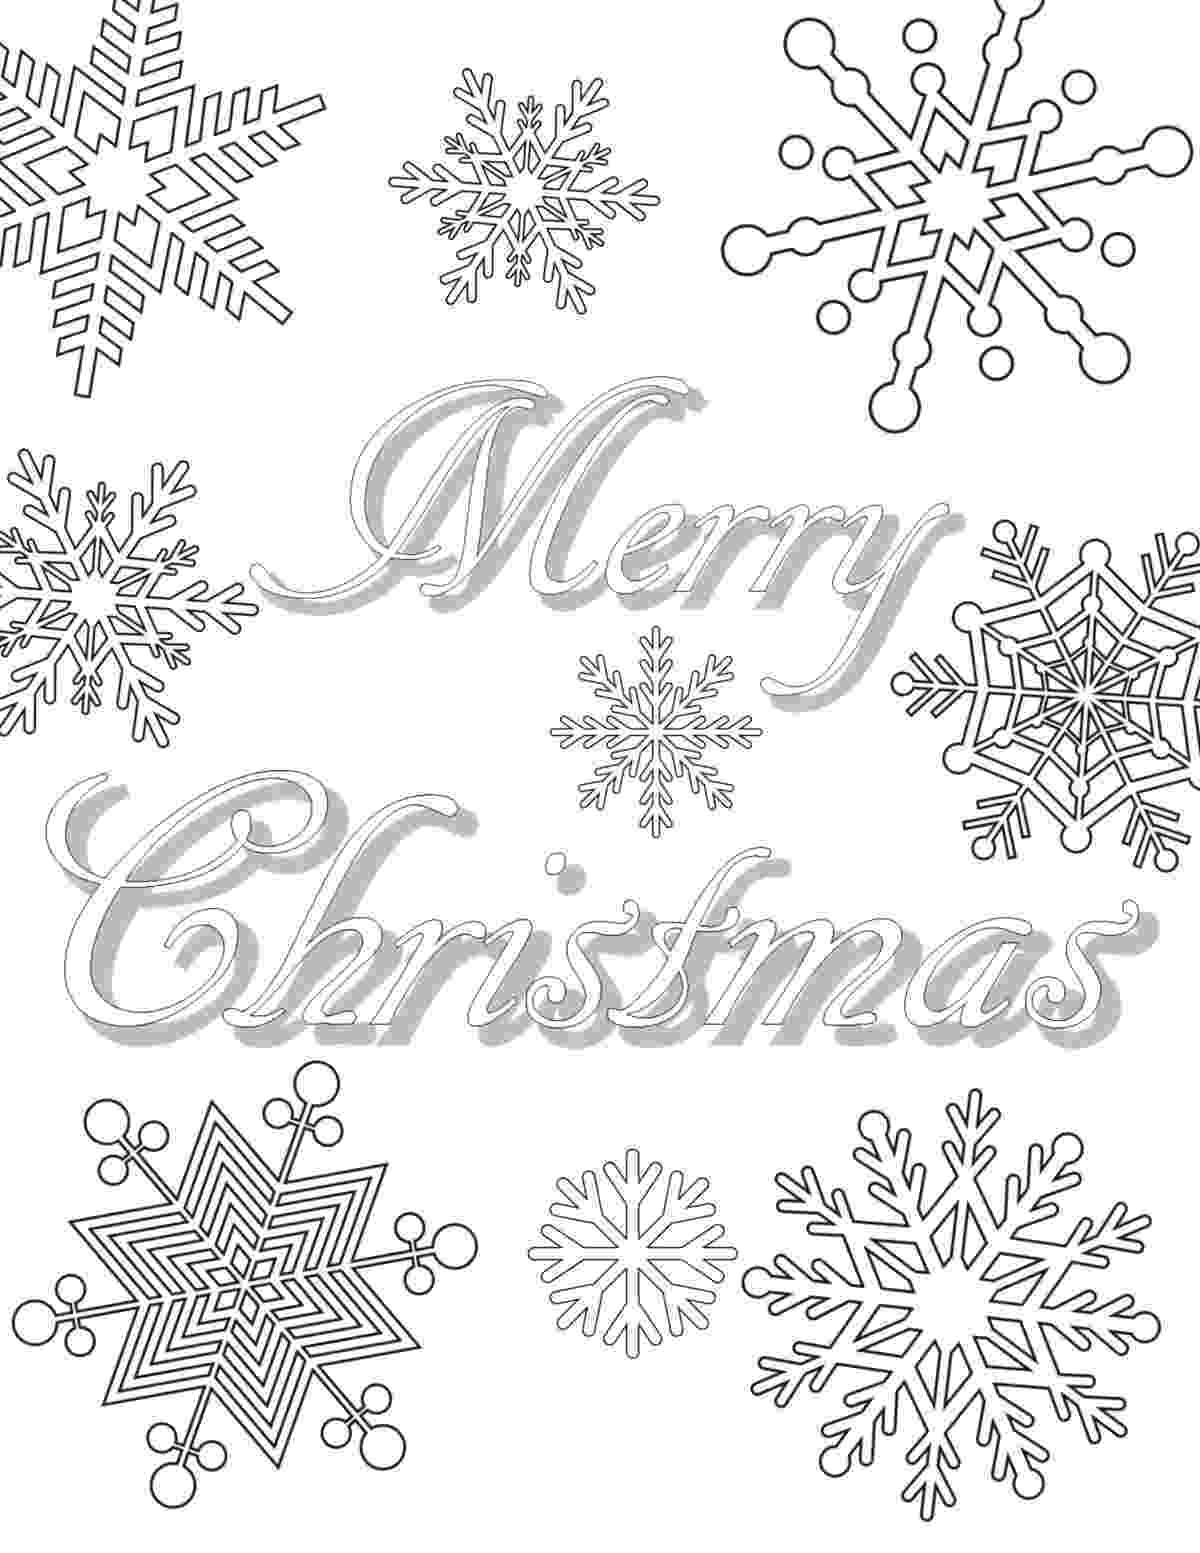 christmas colouring pages for adults printable serendipity adult coloring pages seasonal winterchristmas christmas pages for colouring printable adults